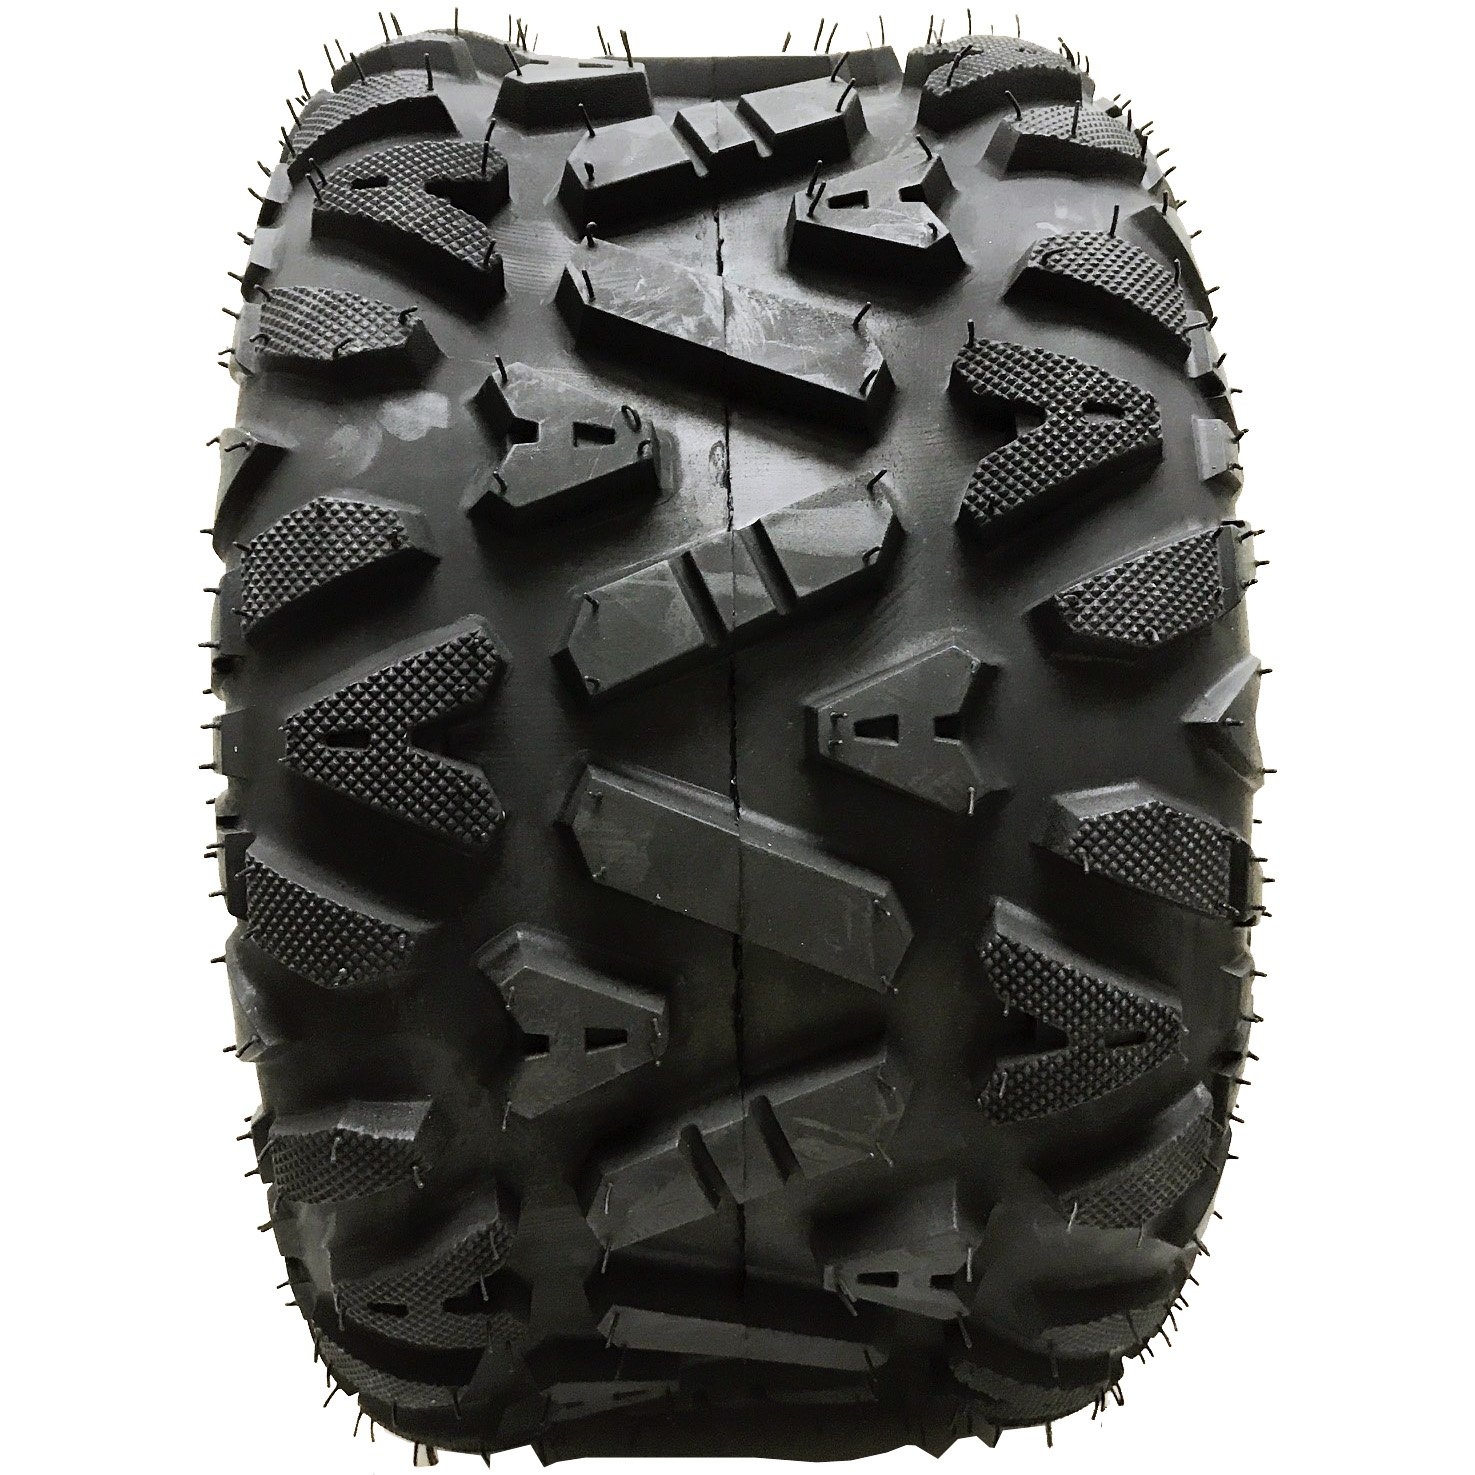 AR DONGFANG 2PCS ATV Tires 25X10X12 JK-600 Quad UTV Go Kart Tires ATV Tire 6PLY Tubeless 25x10-12